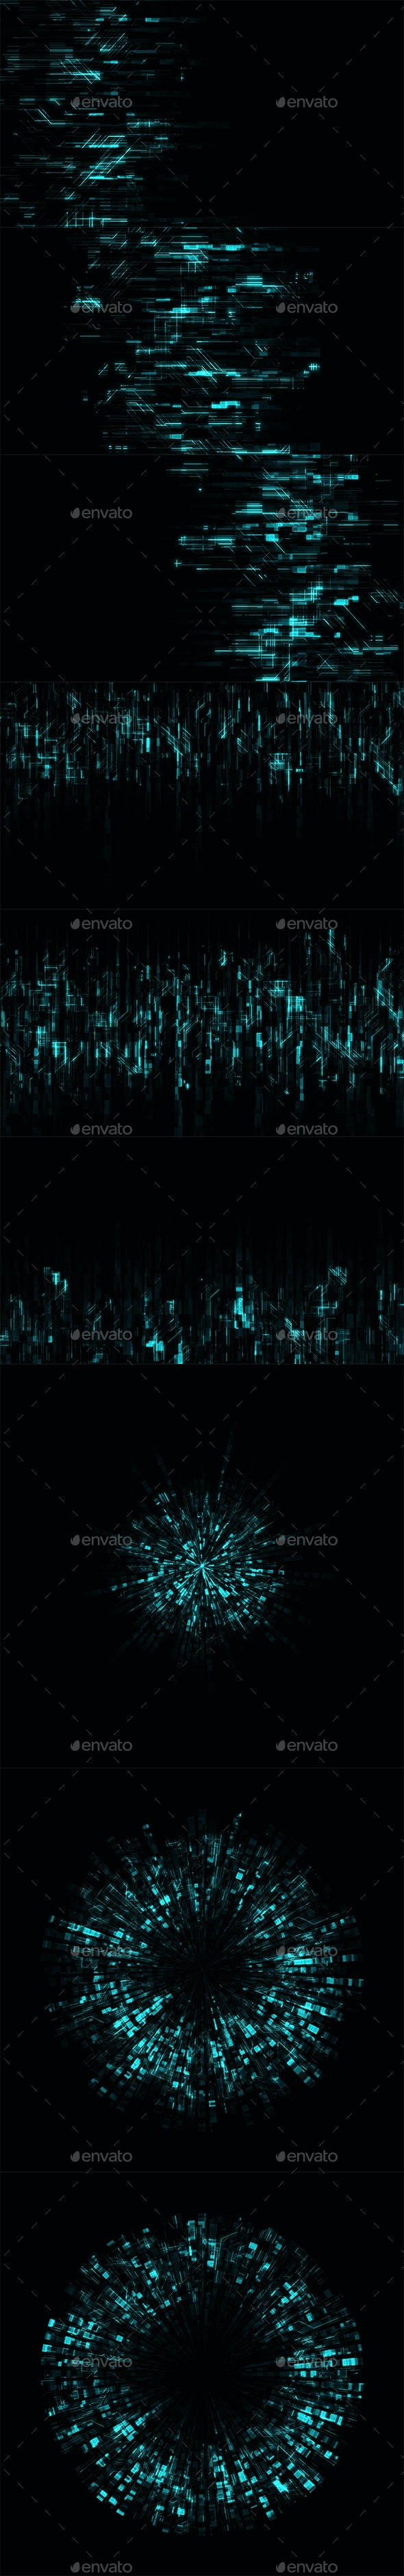 Digital Light - Abstract Backgrounds